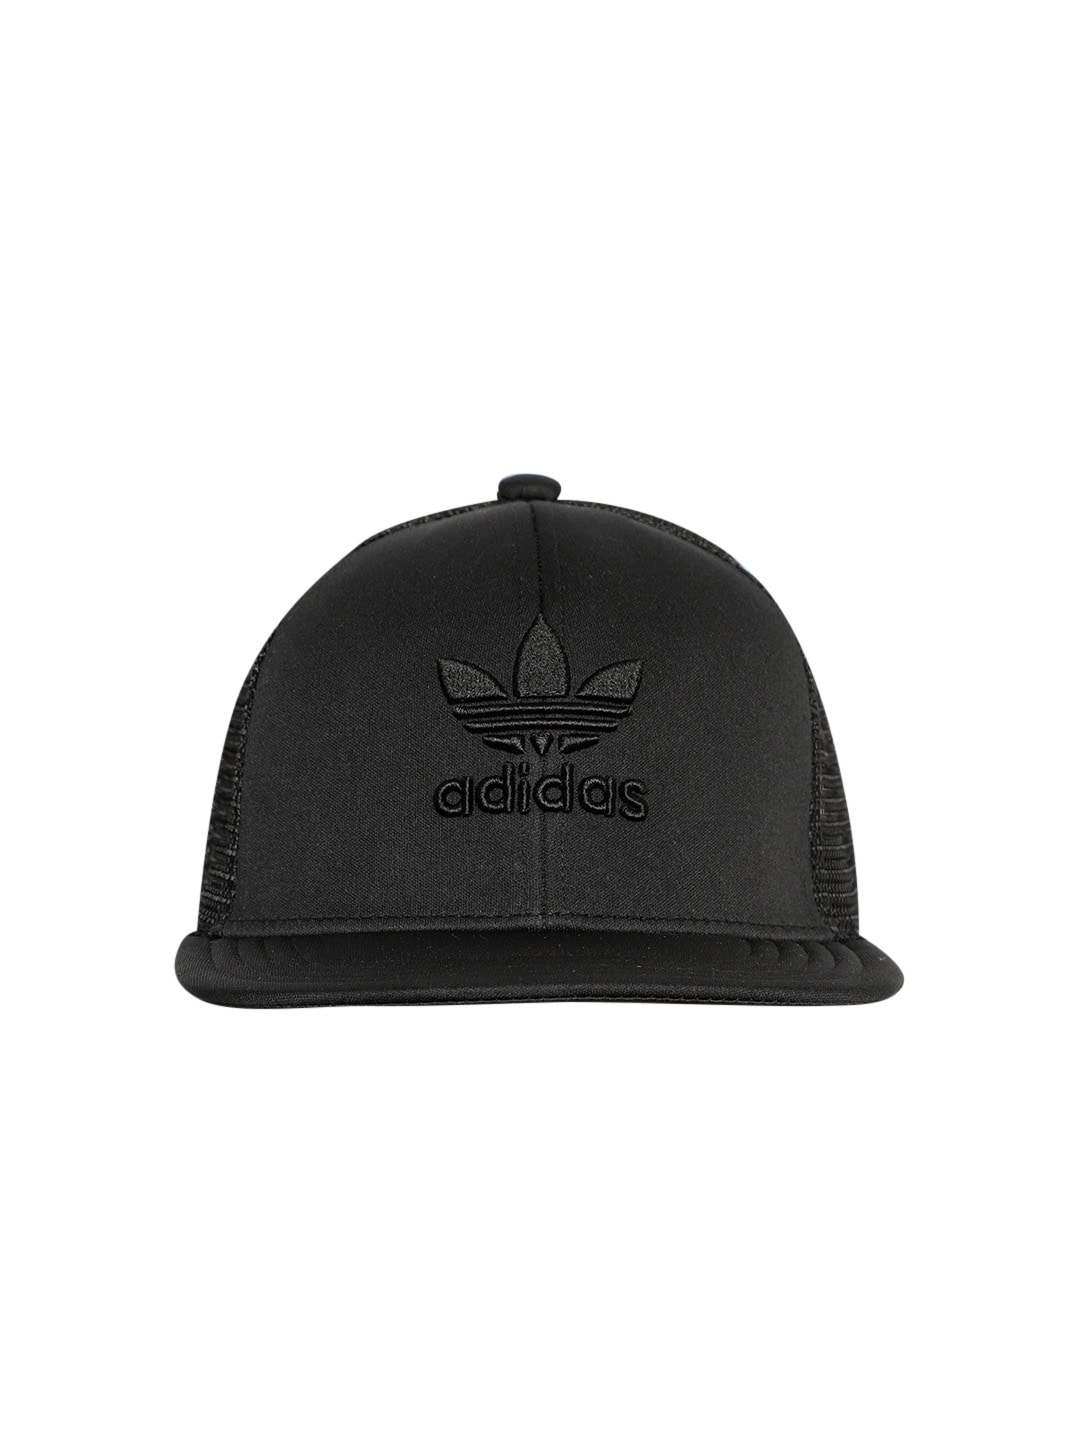 Adidas Original Men Caps - Buy Adidas Original Men Caps online in India 90d45d08e8a8